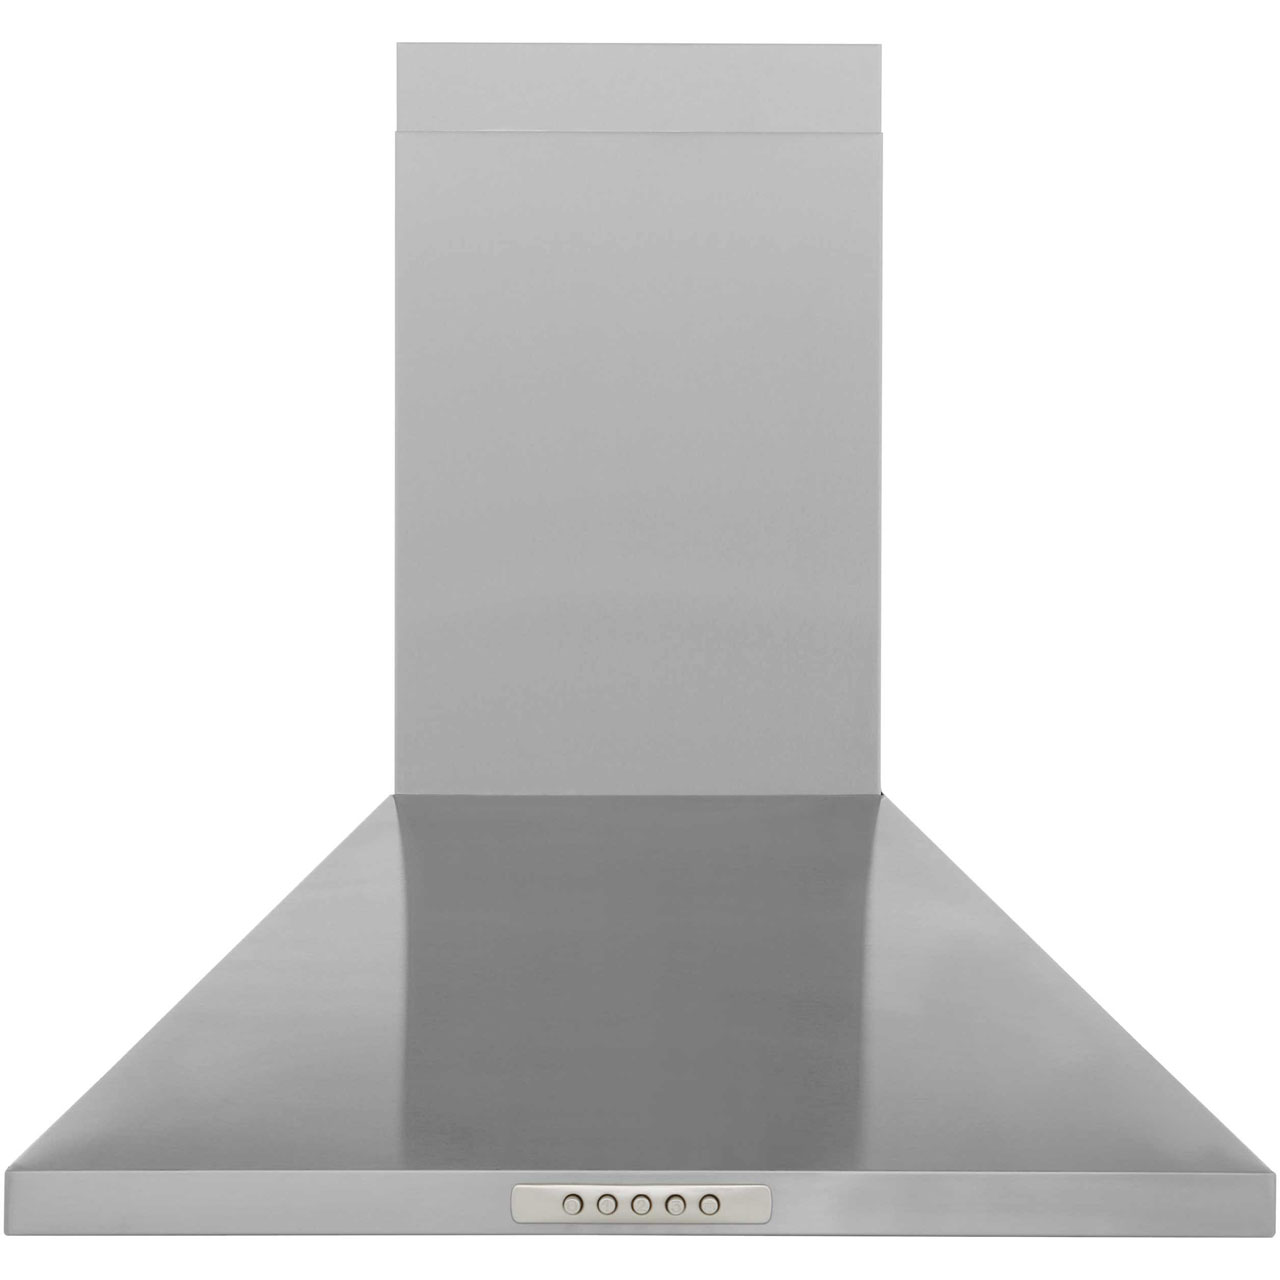 Newworld Unbranded CHIM60S Integrated Cooker Hood in Stainless Steel